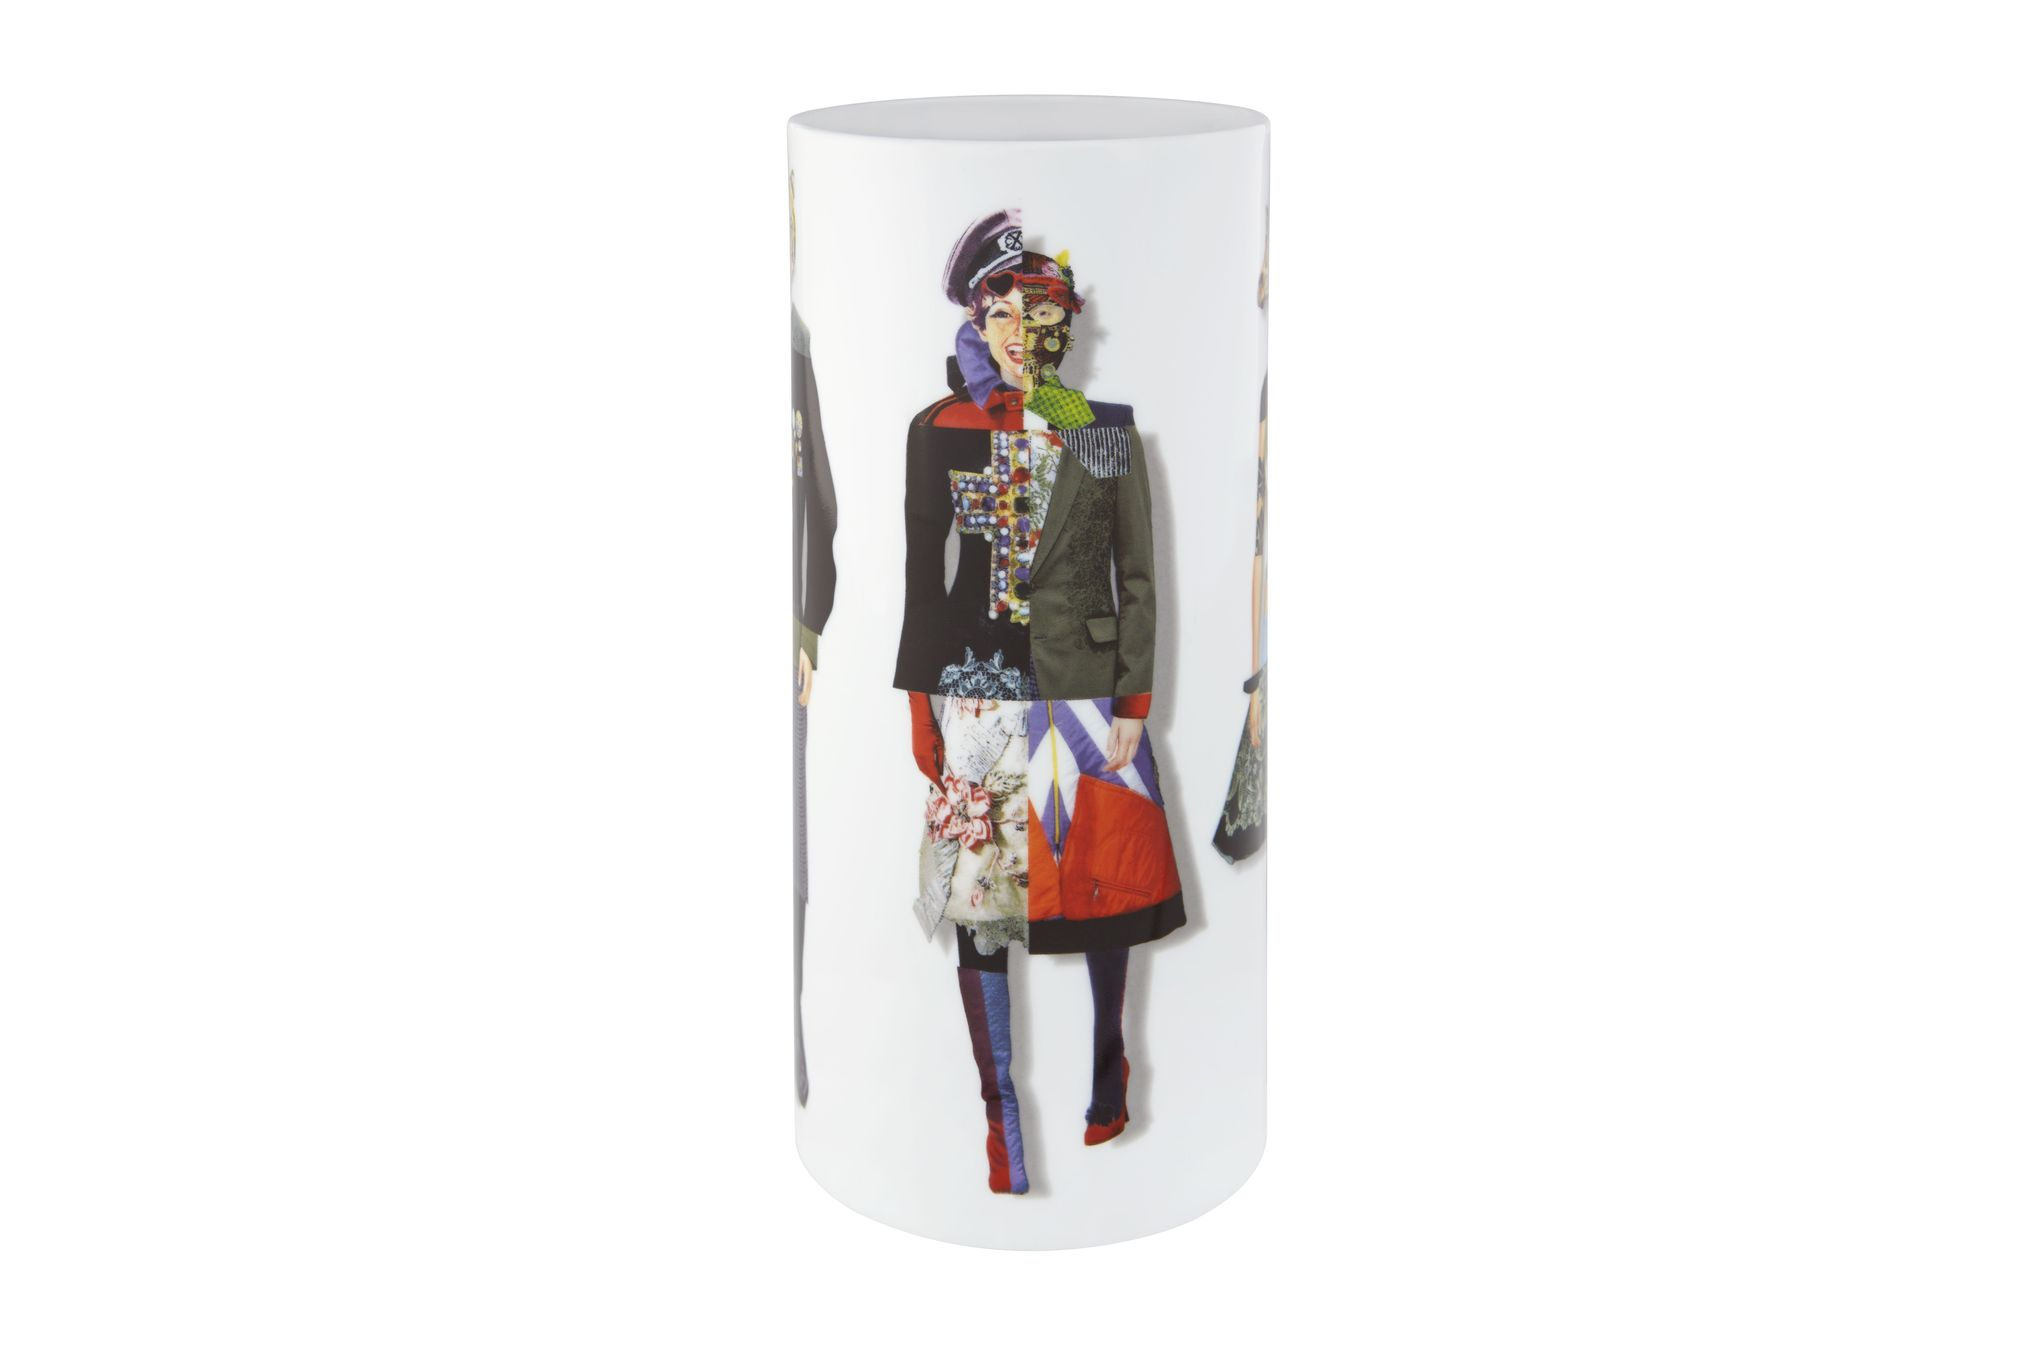 Christian Lacroix Love Who You Want Vase Gift Boxed 27.8cm thumb 1